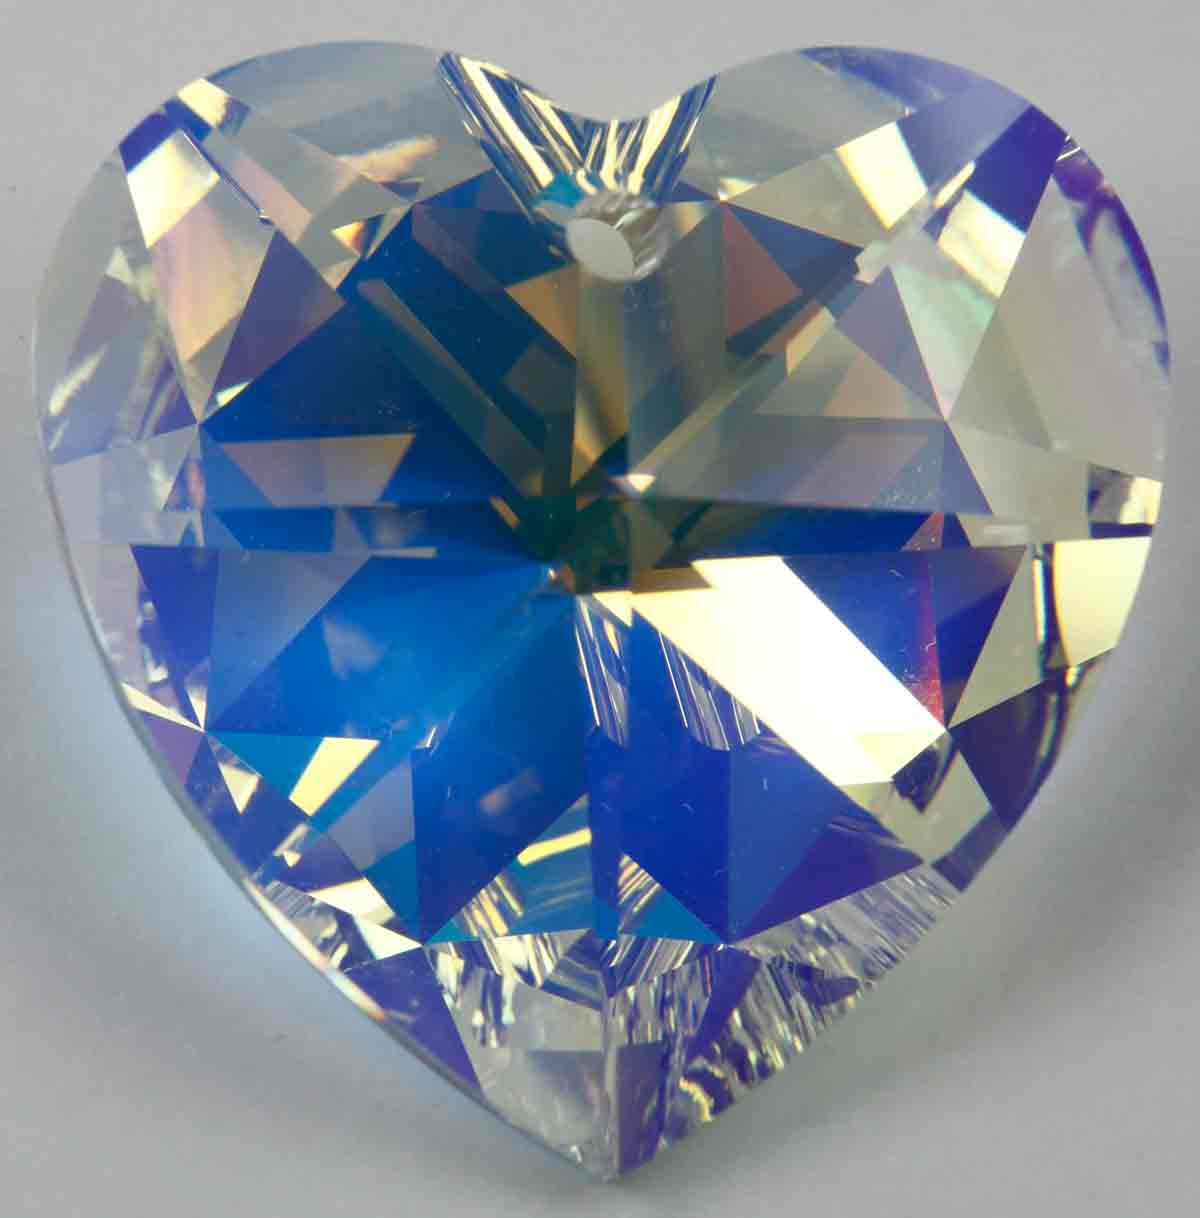 717e5a6b06876 Beveled heart shaped swarovski crystal pendant, #6202, 10.3 x 10 mm. Sold  per pack of 10.